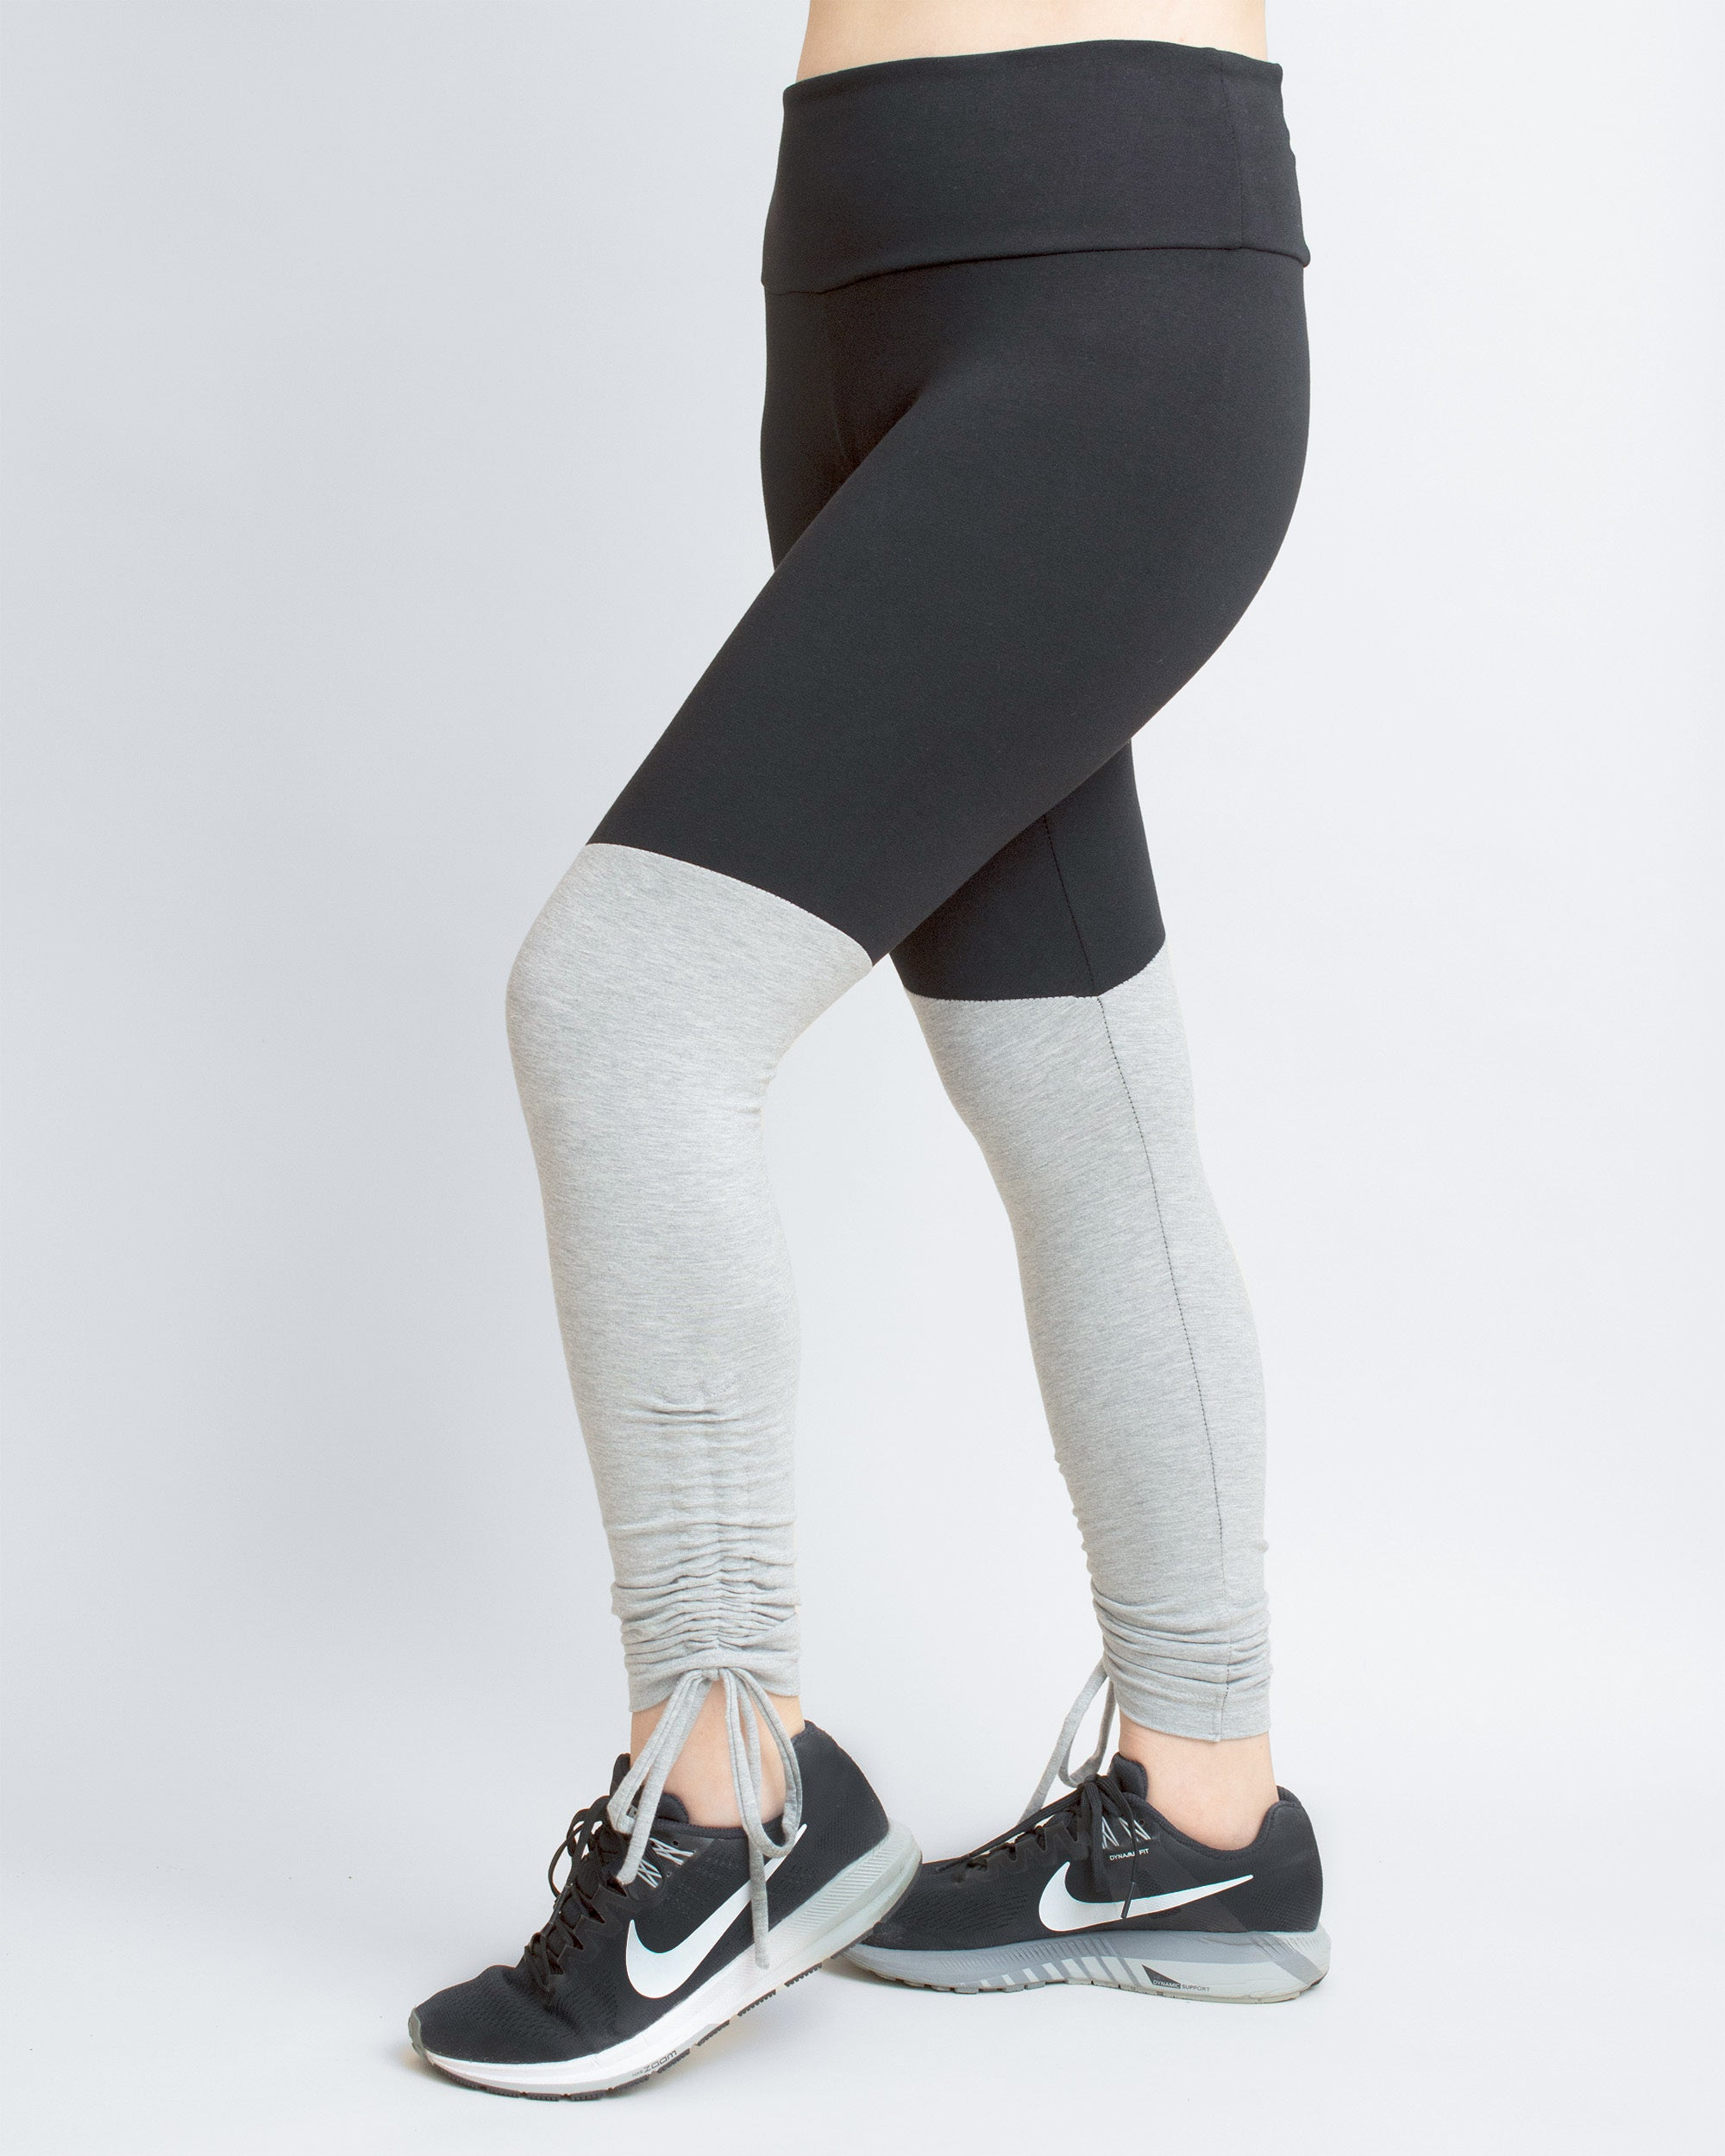 Aila Leggings – PDF Sewing Pattern